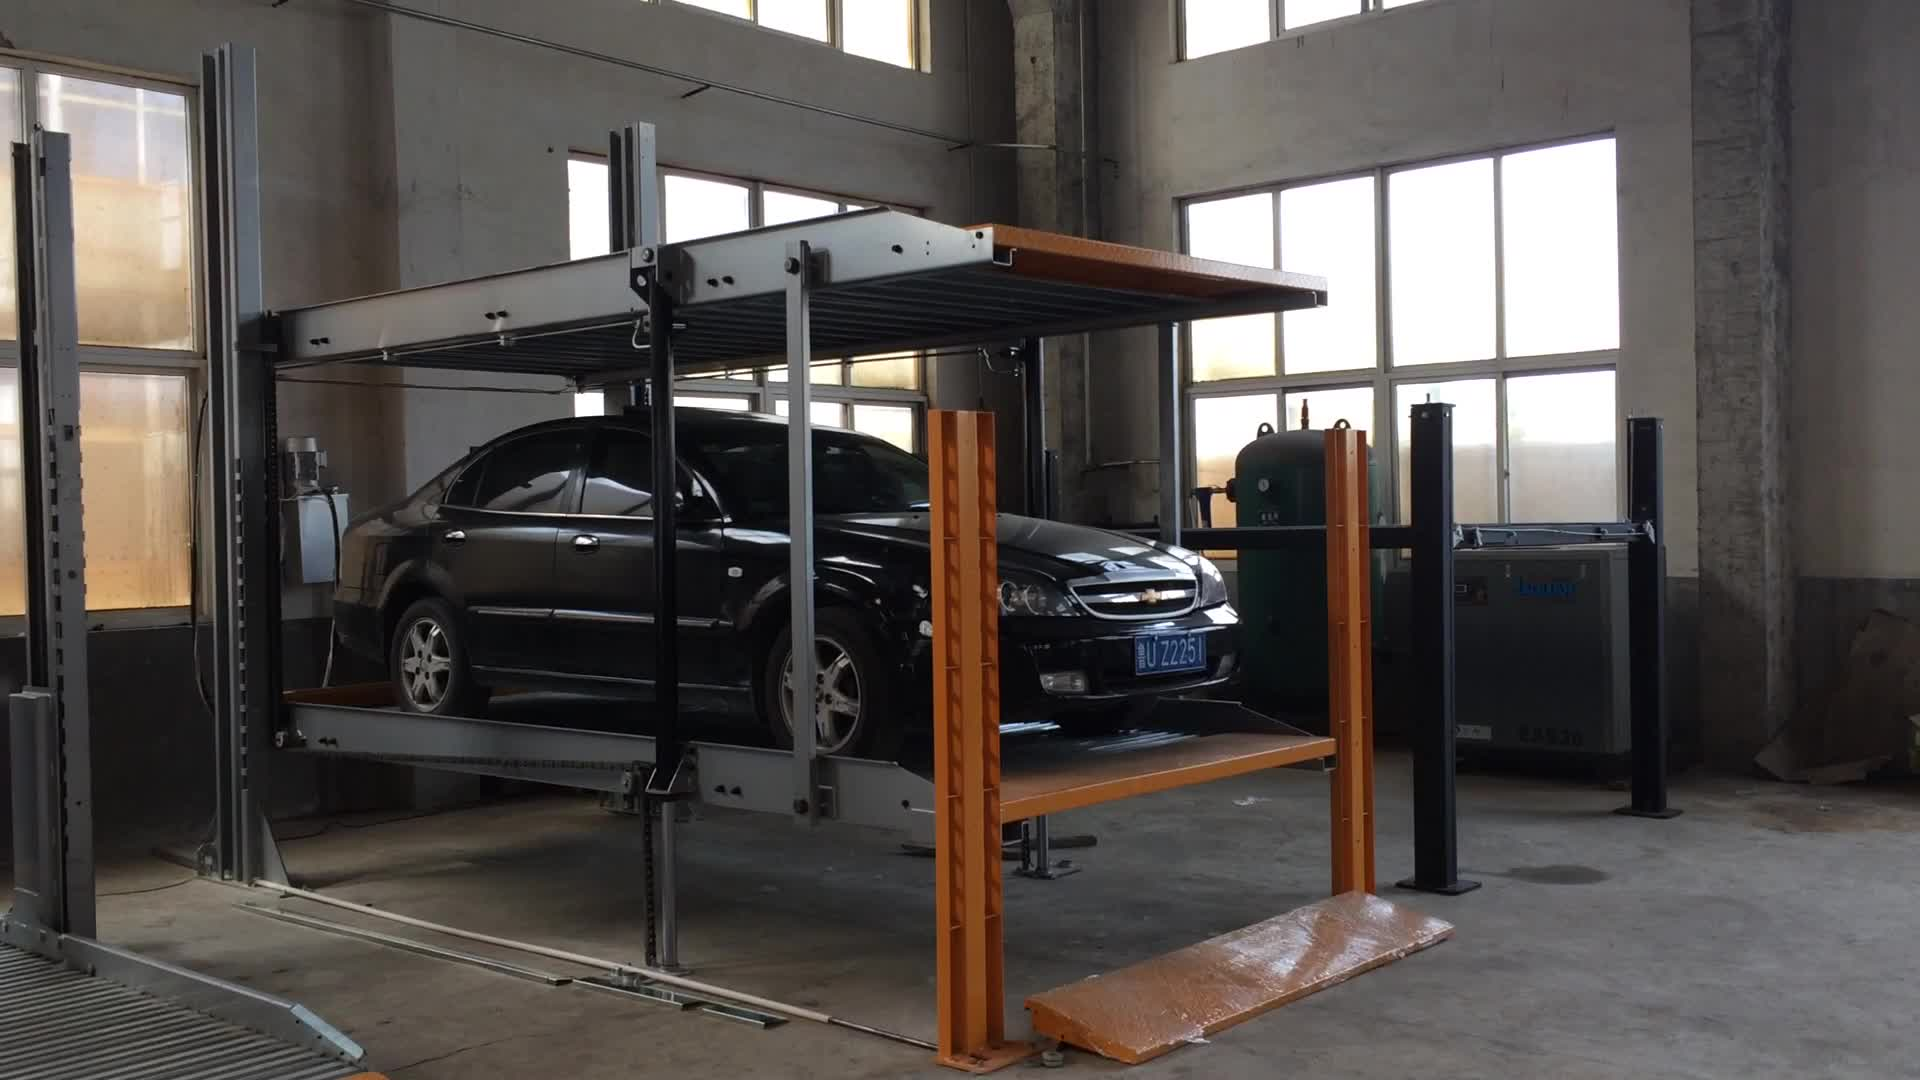 In Ground Garage Car Lift Underground Car Parking Lift Car Canopy With Ce Lianhai Parking Buy In Ground Parking Car Lift Parking Underground Garage Vertical Car Parking